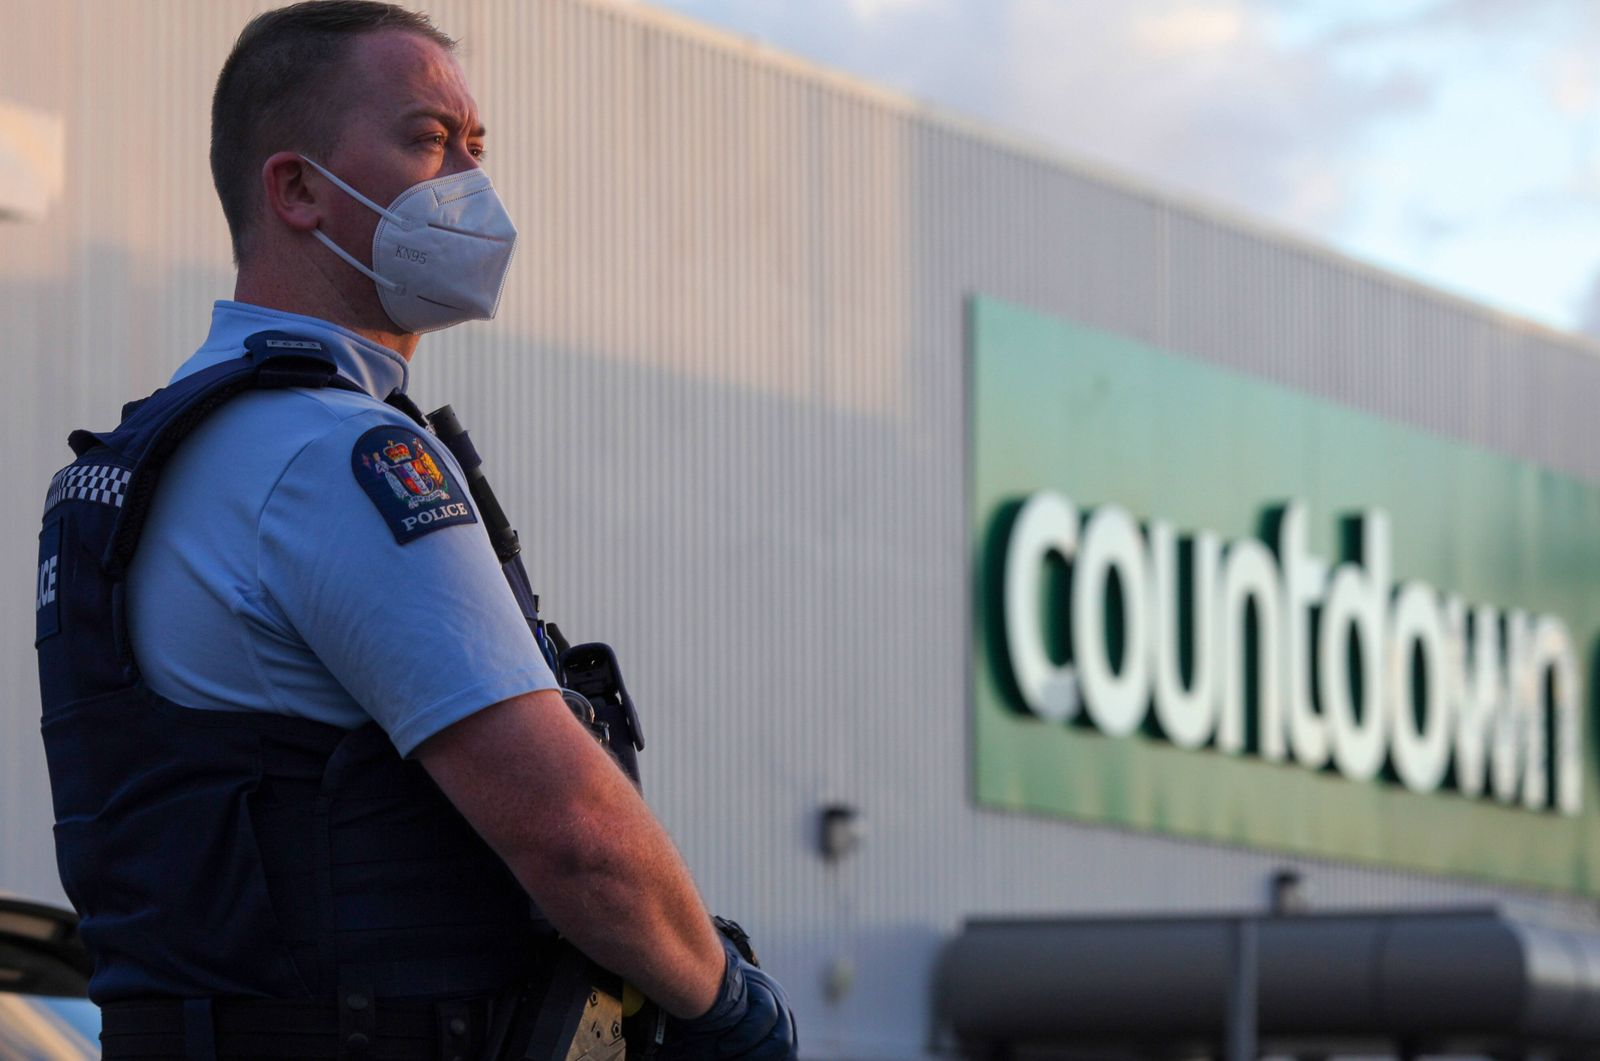 (210903) -- AUCKLAND, Sept. 3, 2021 -- A police officer stands guard near the New Lynn supermarket in Auckland, New Zeal